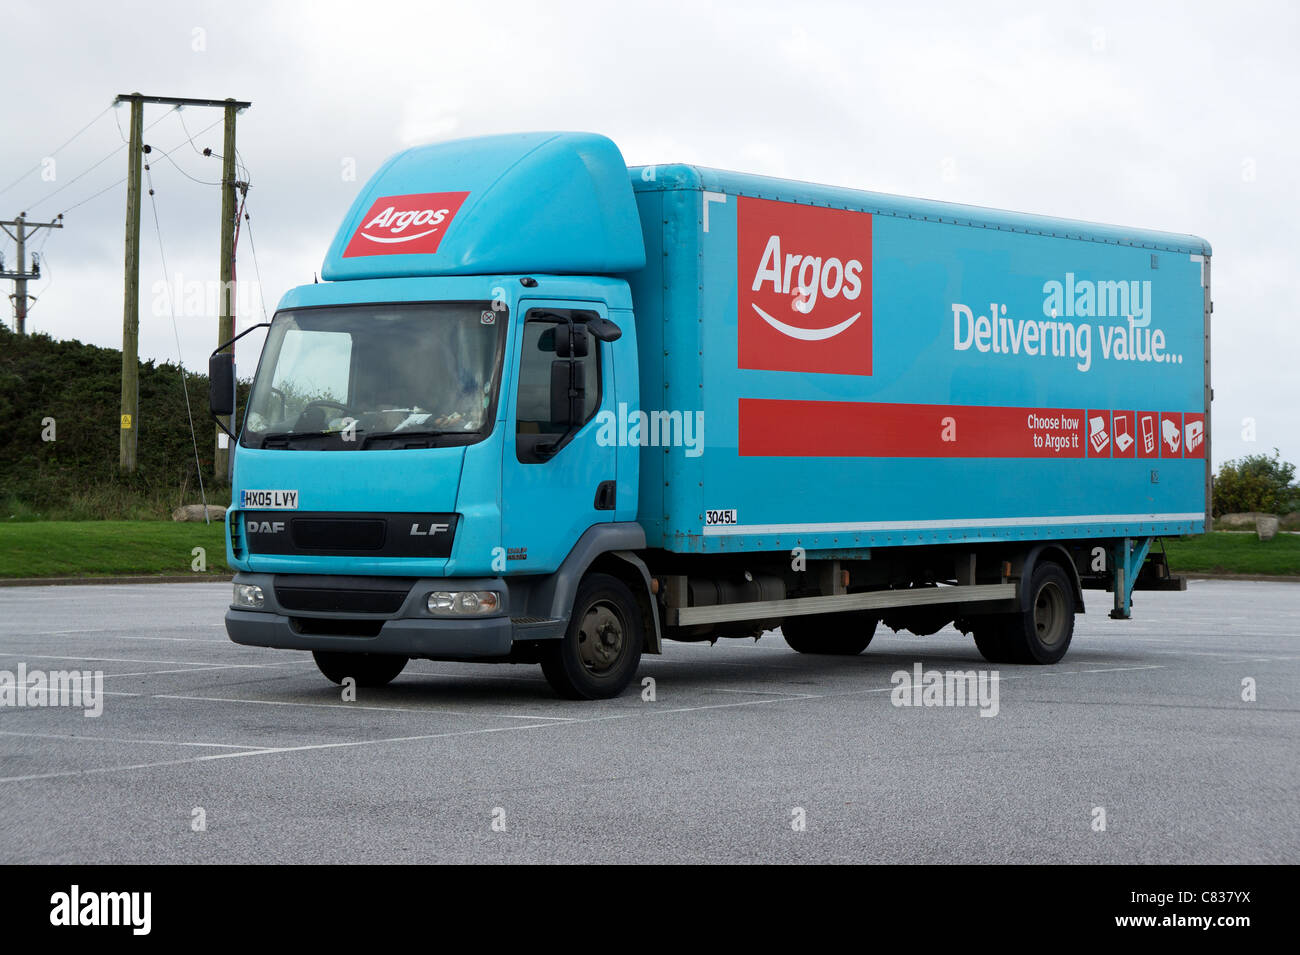 An Argos delivery truck - Stock Image